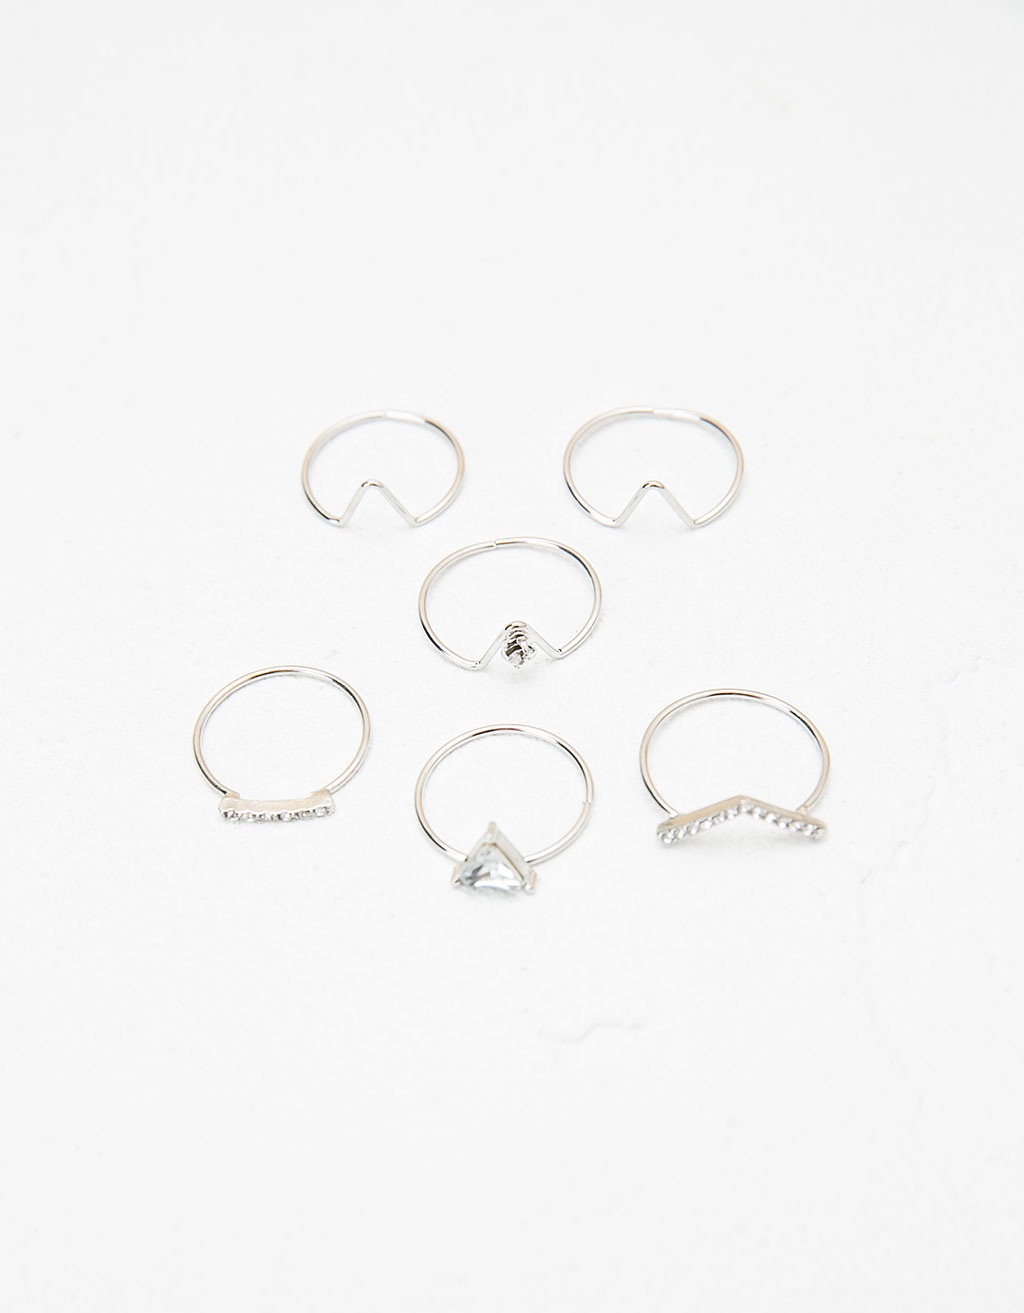 Silver stone ring set